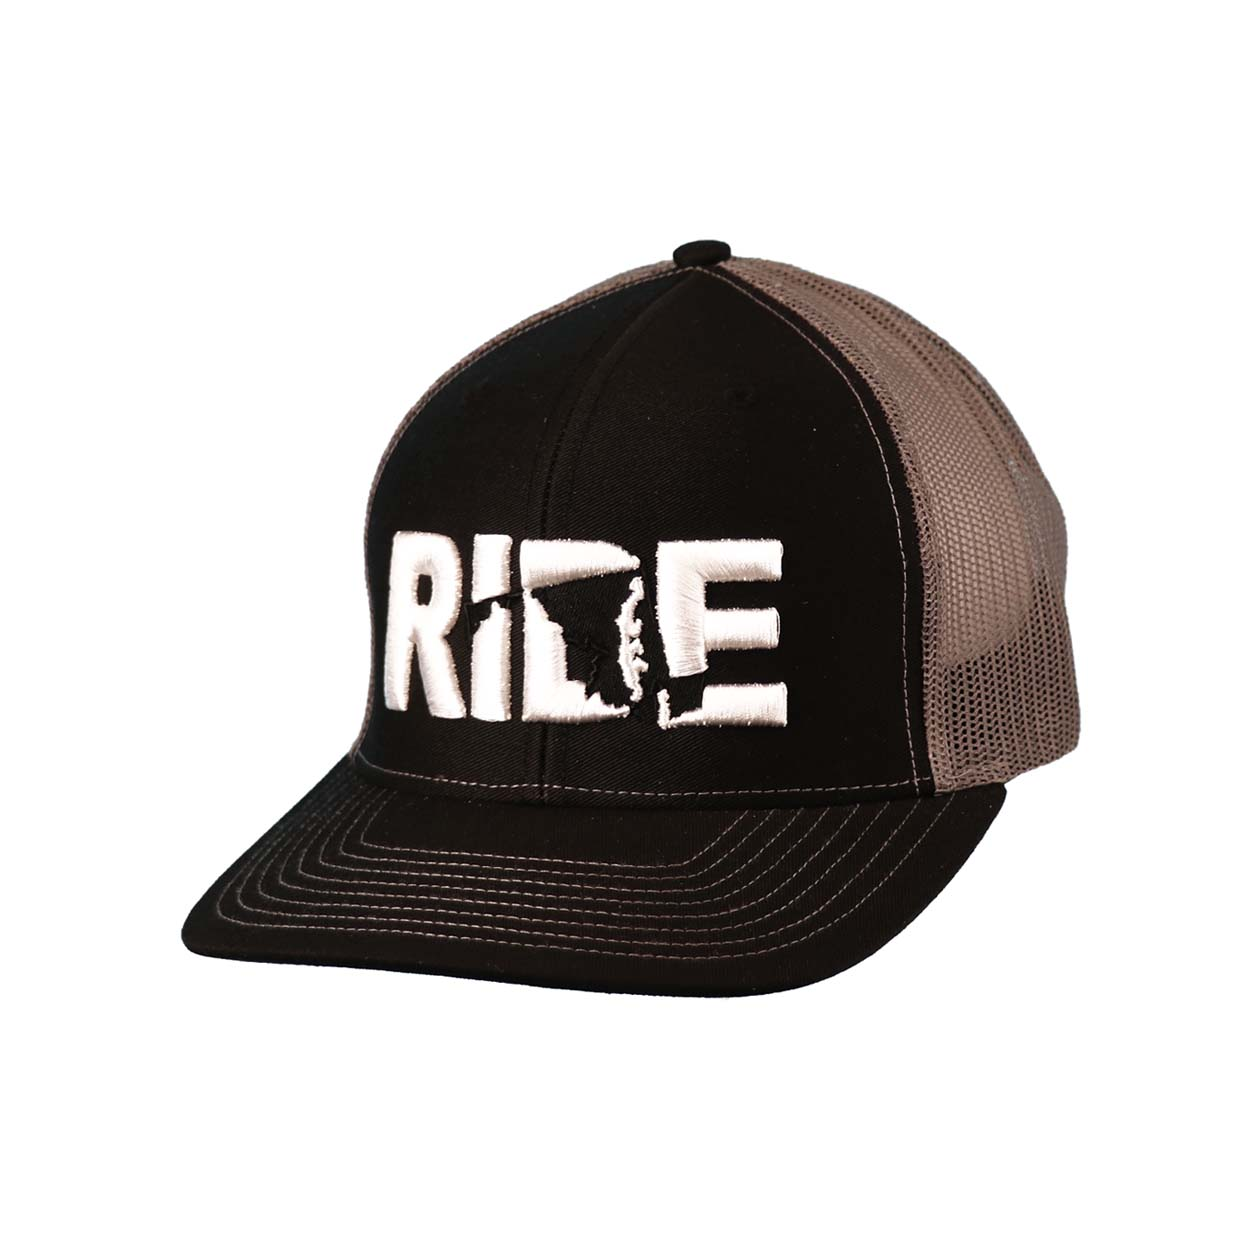 Ride Maryland Classic Embroidered Snapback Trucker Hat Black/White